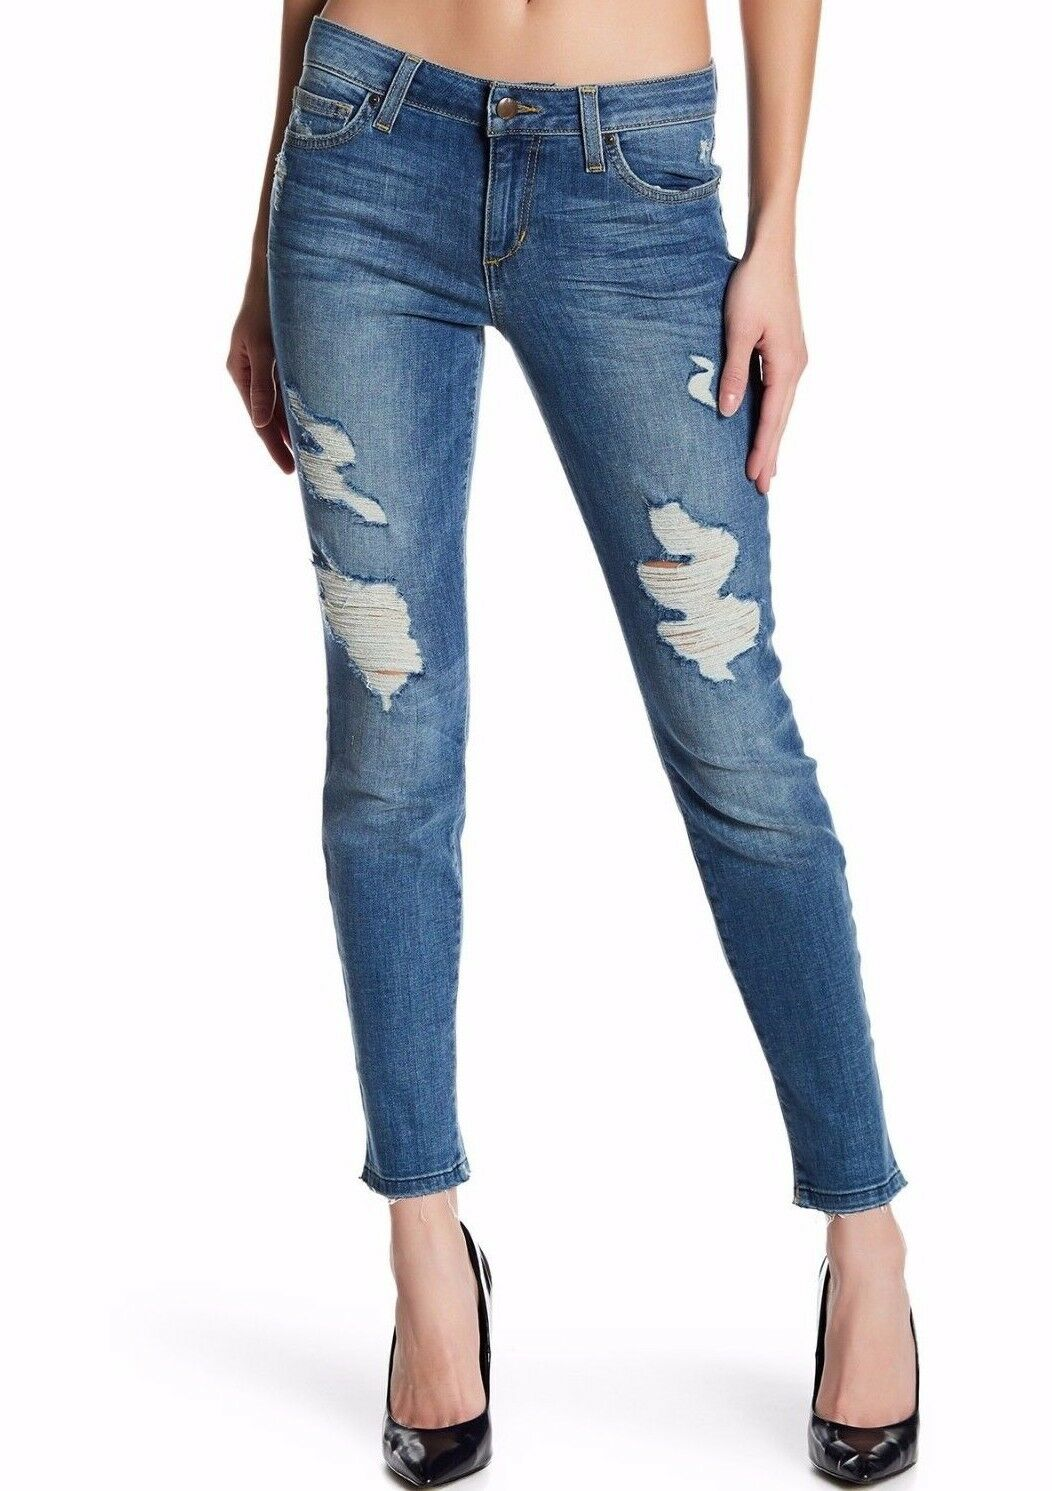 NWT JOE'S Sz27 THE SKINNY ANKLE SLIM MIDRISE STRETCH JEANS BERDINE DISTRESSED